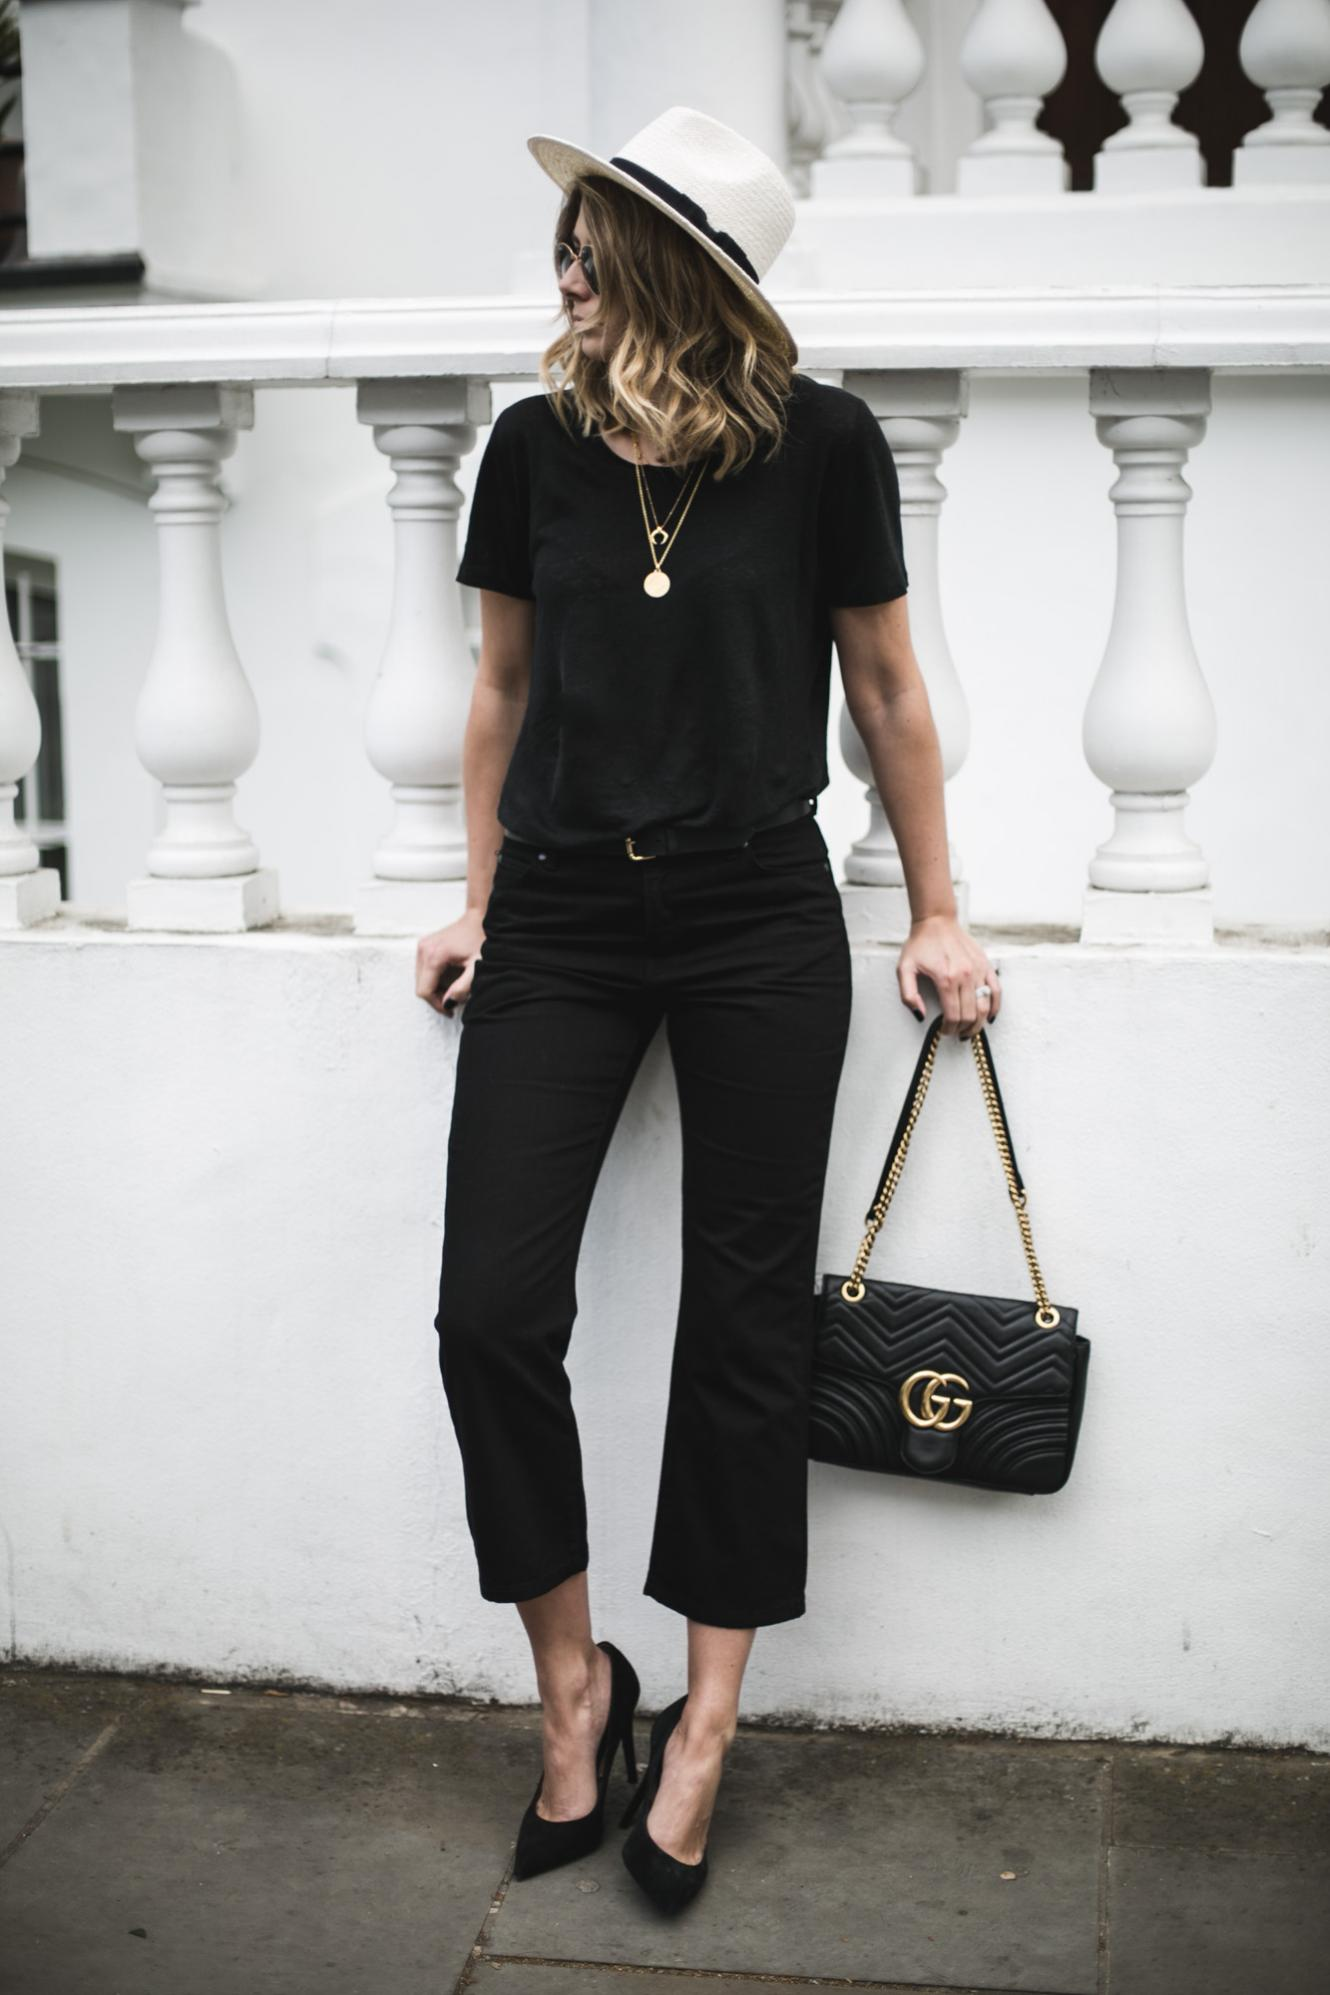 Emma Hill wearing an all black outfit with Panama hat for Spring